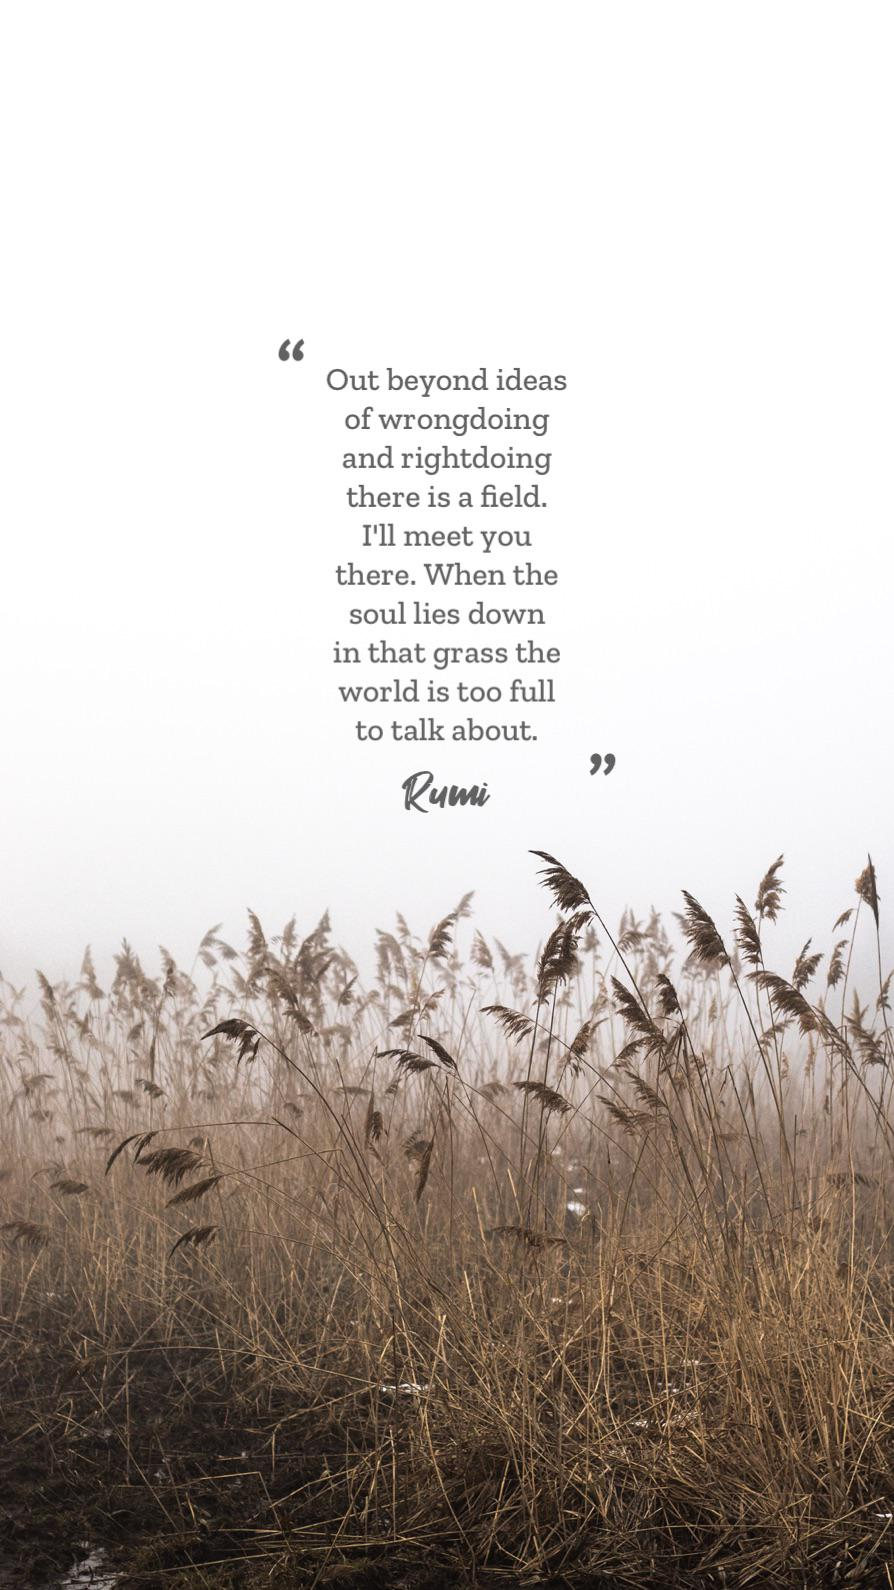 """Out beyond ideas of wrongdoing and rightdoing there is a field. I'll meet you there. When the soul lies down in that grass the world is too full to talk about."" -Rumi (320×480)"